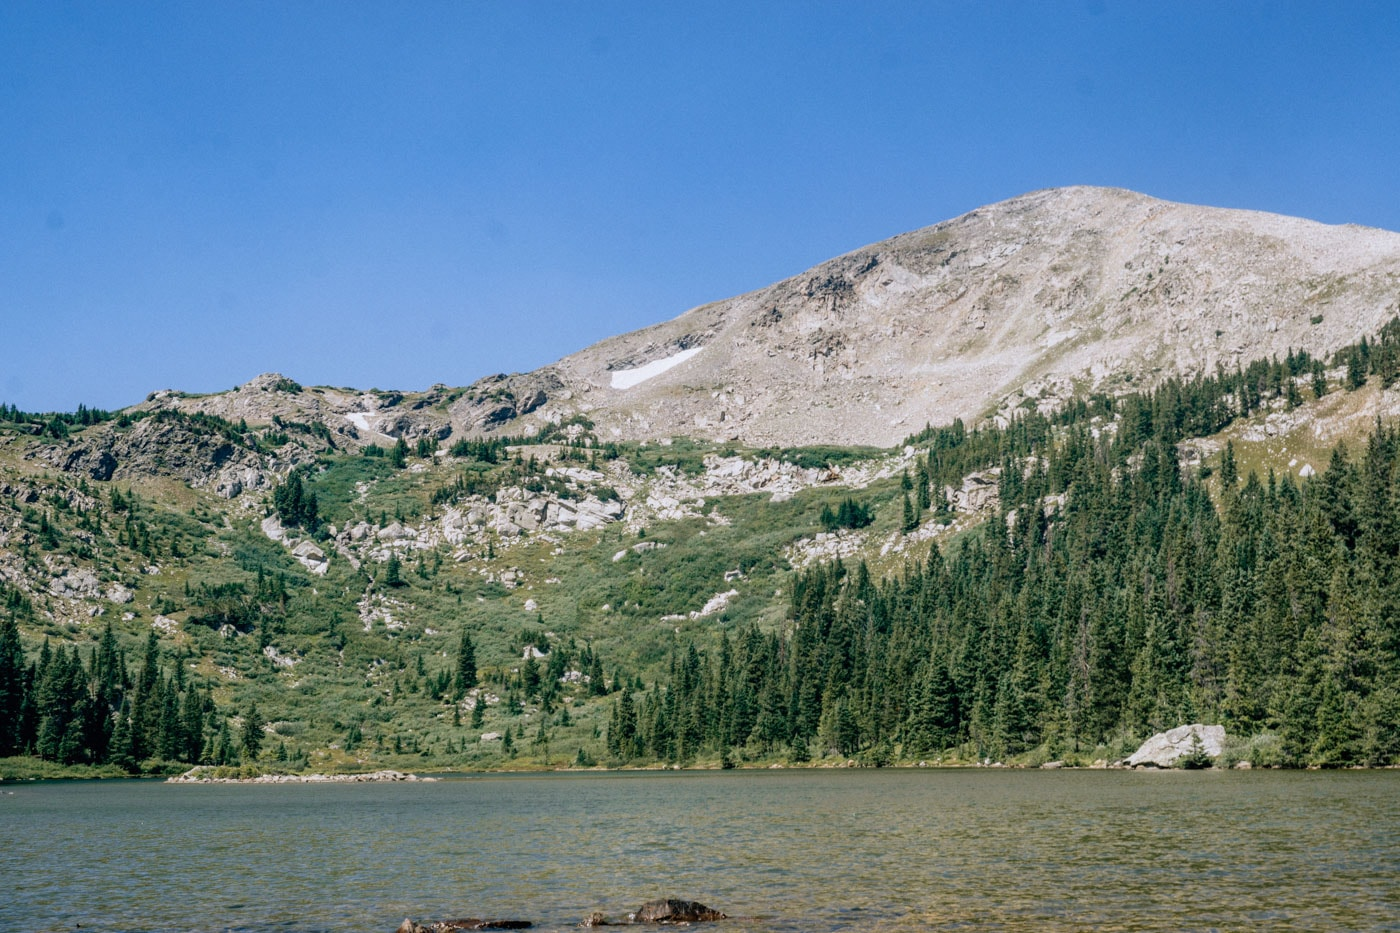 Hike Kroenke Lake outside Buena Vista